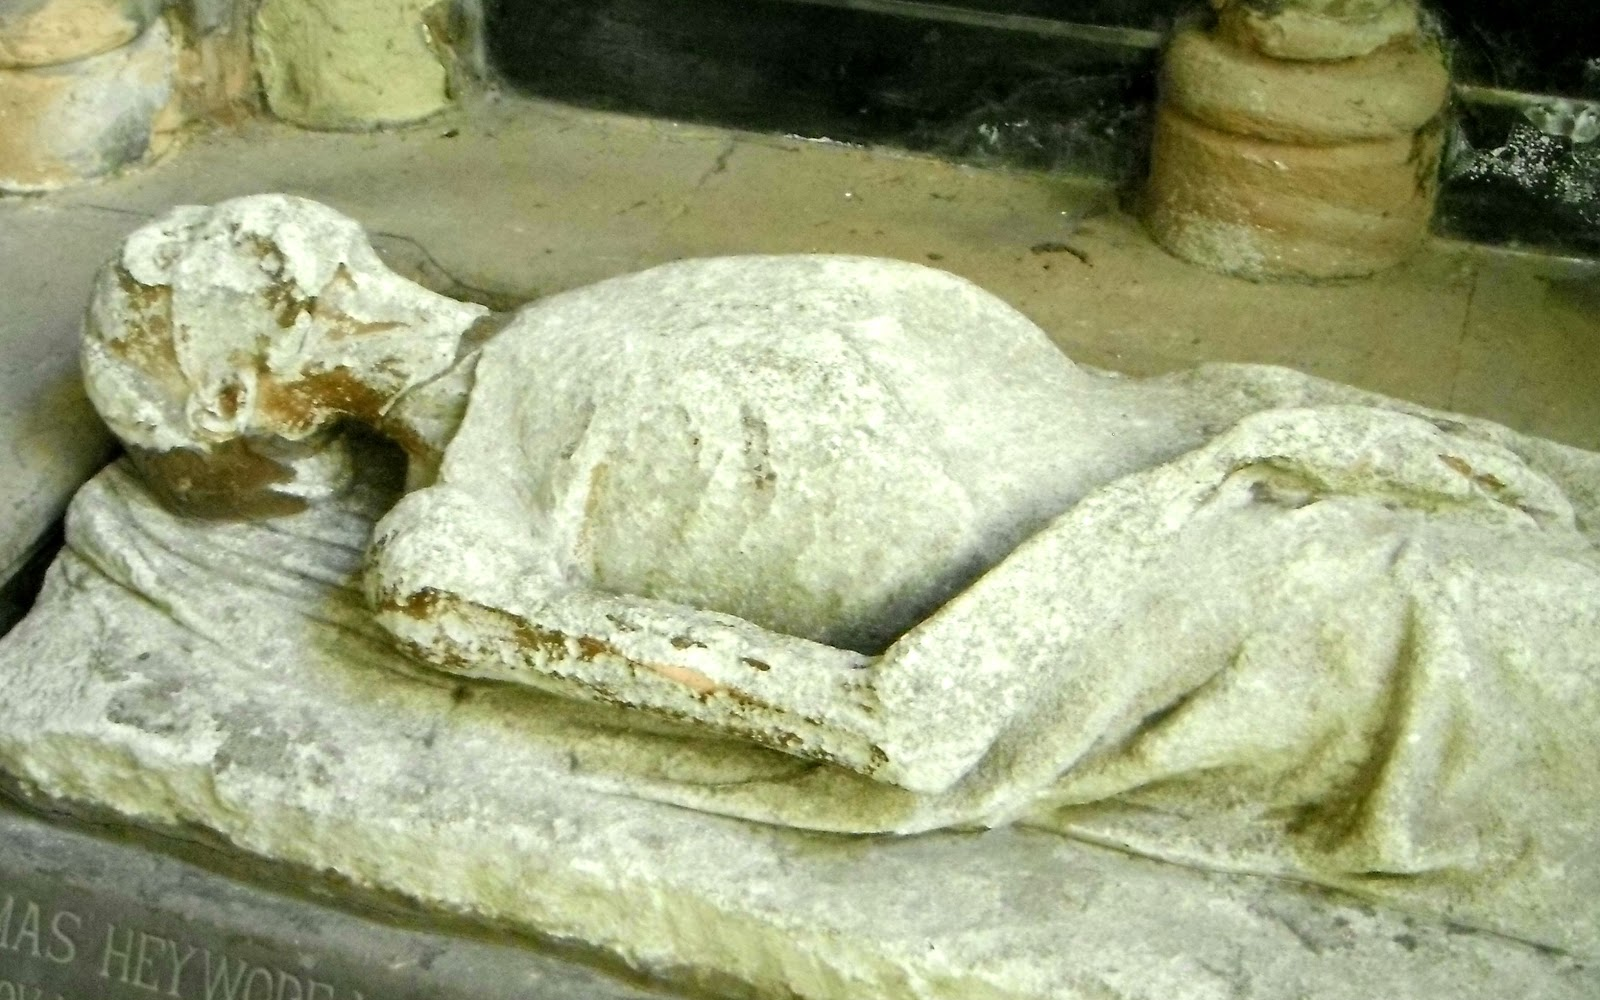 Monument to Thomas Heywode in Lichfield Cathedral